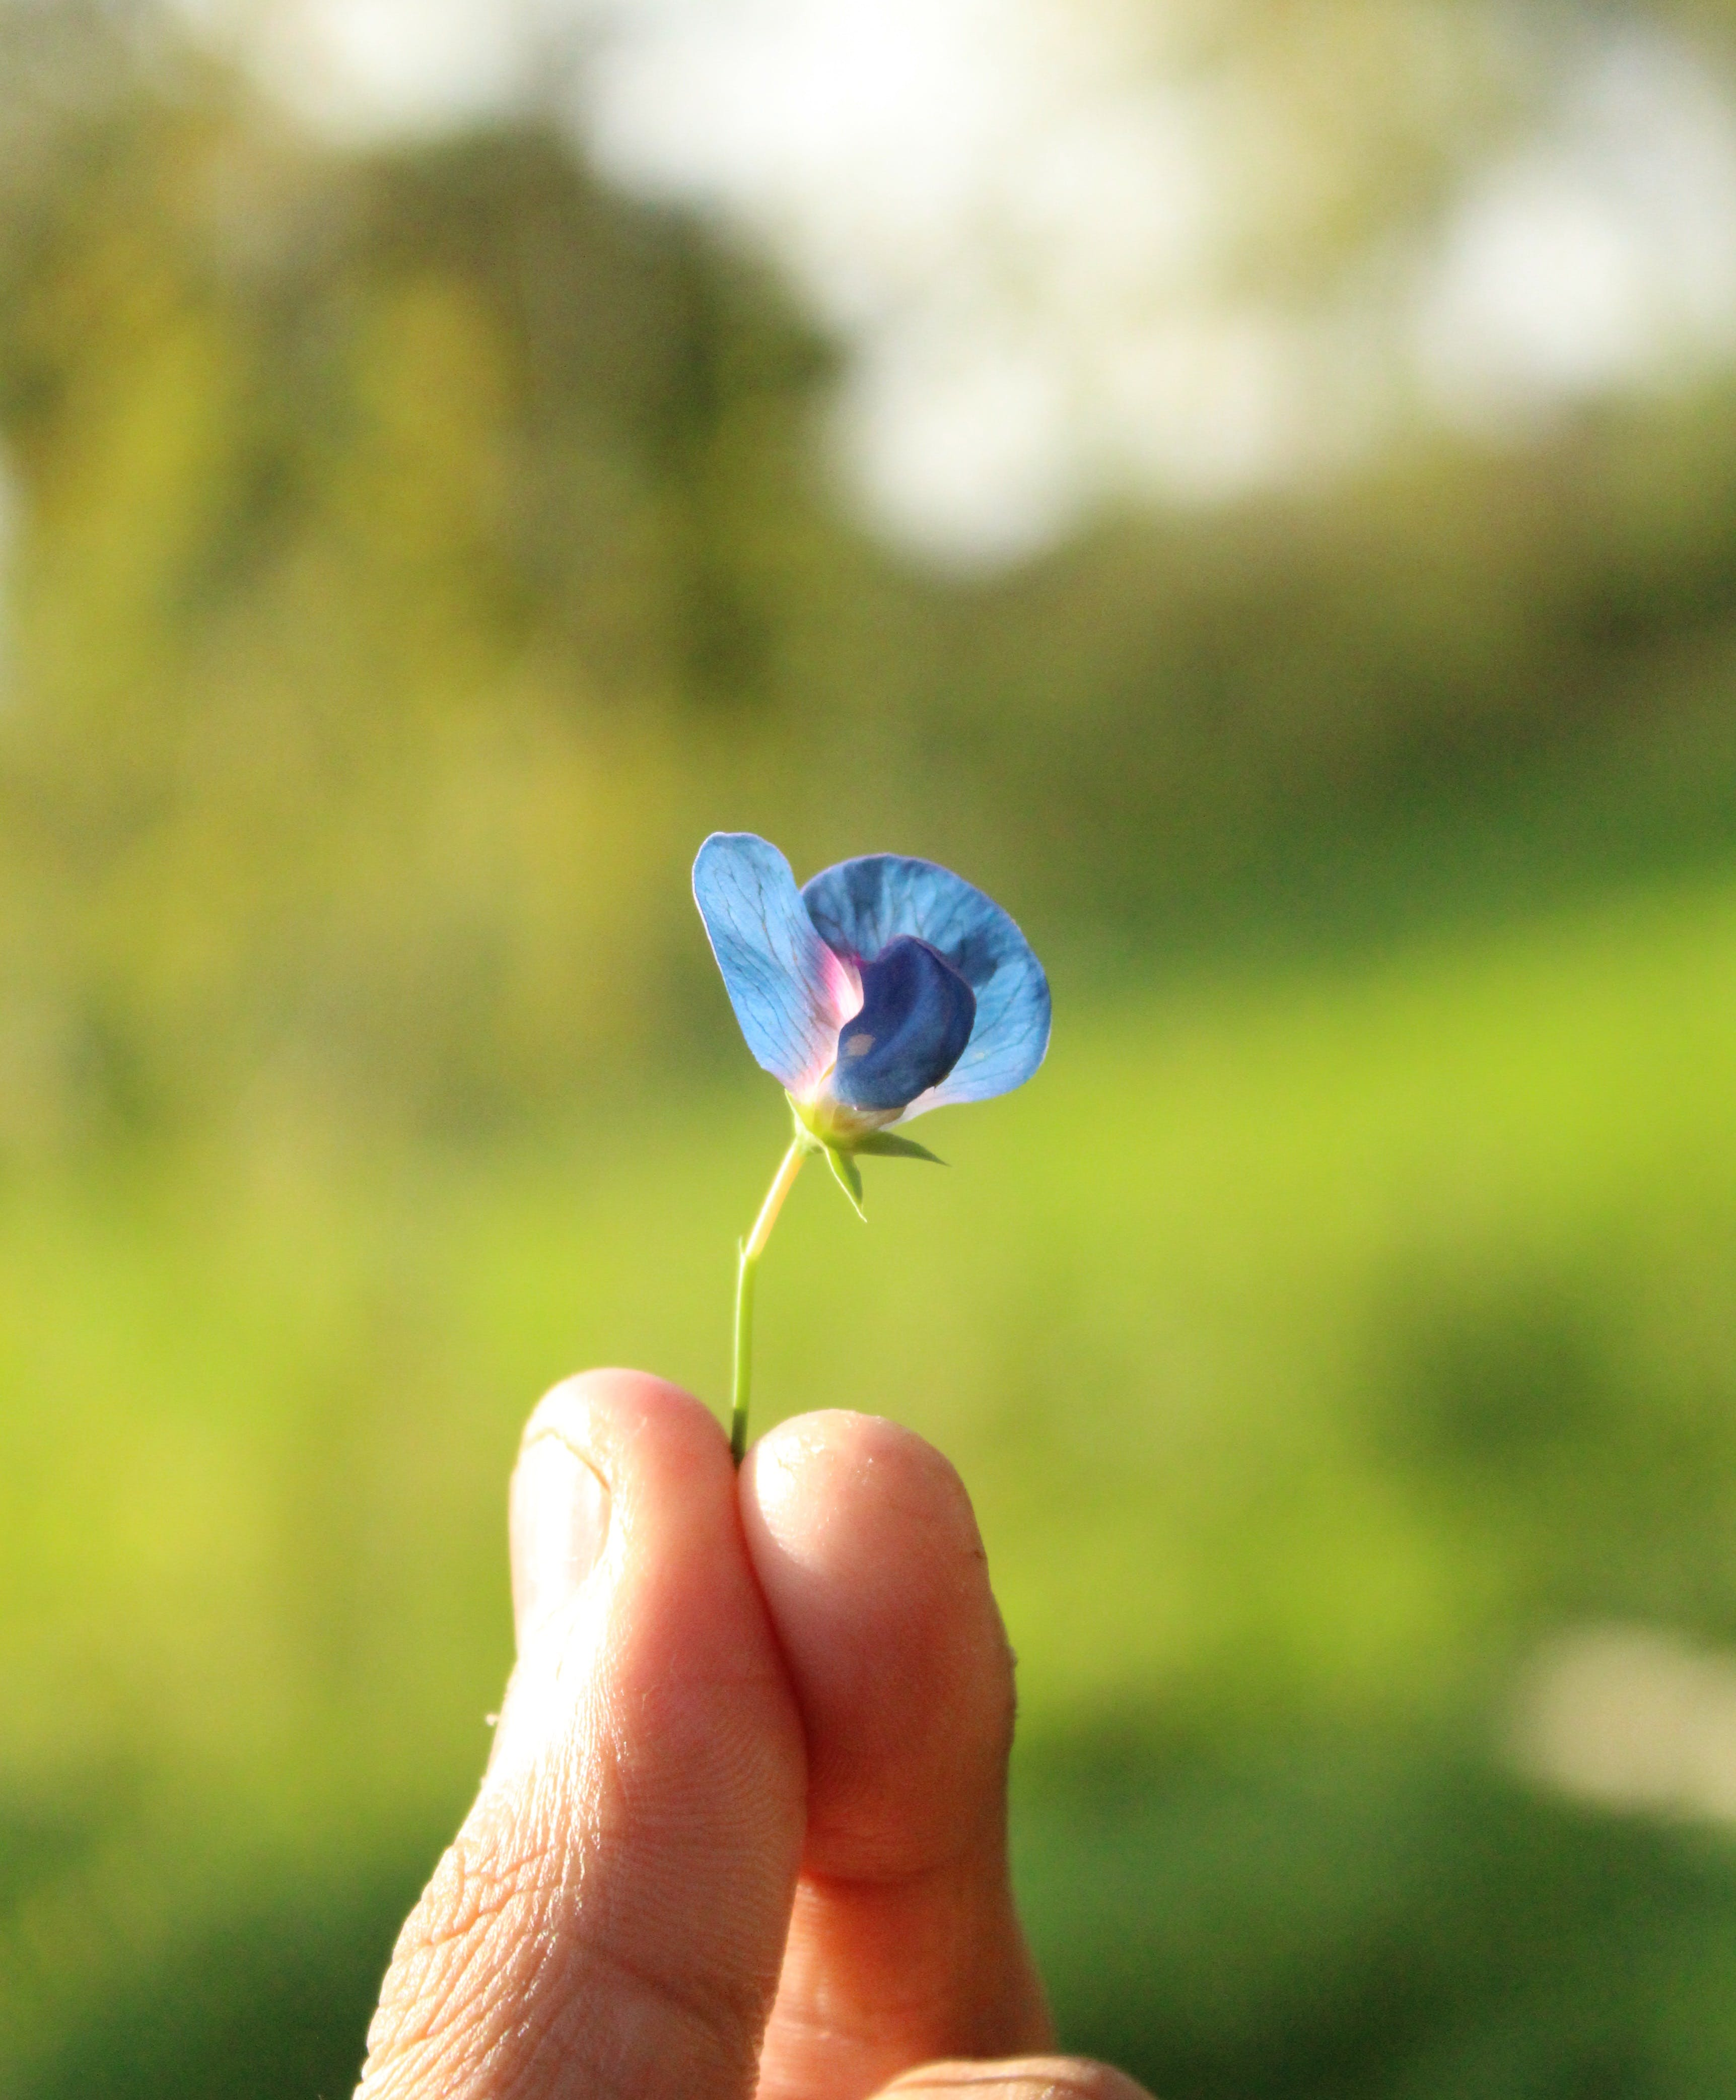 Small Blue Petaled Flower Held by Person's Fingers